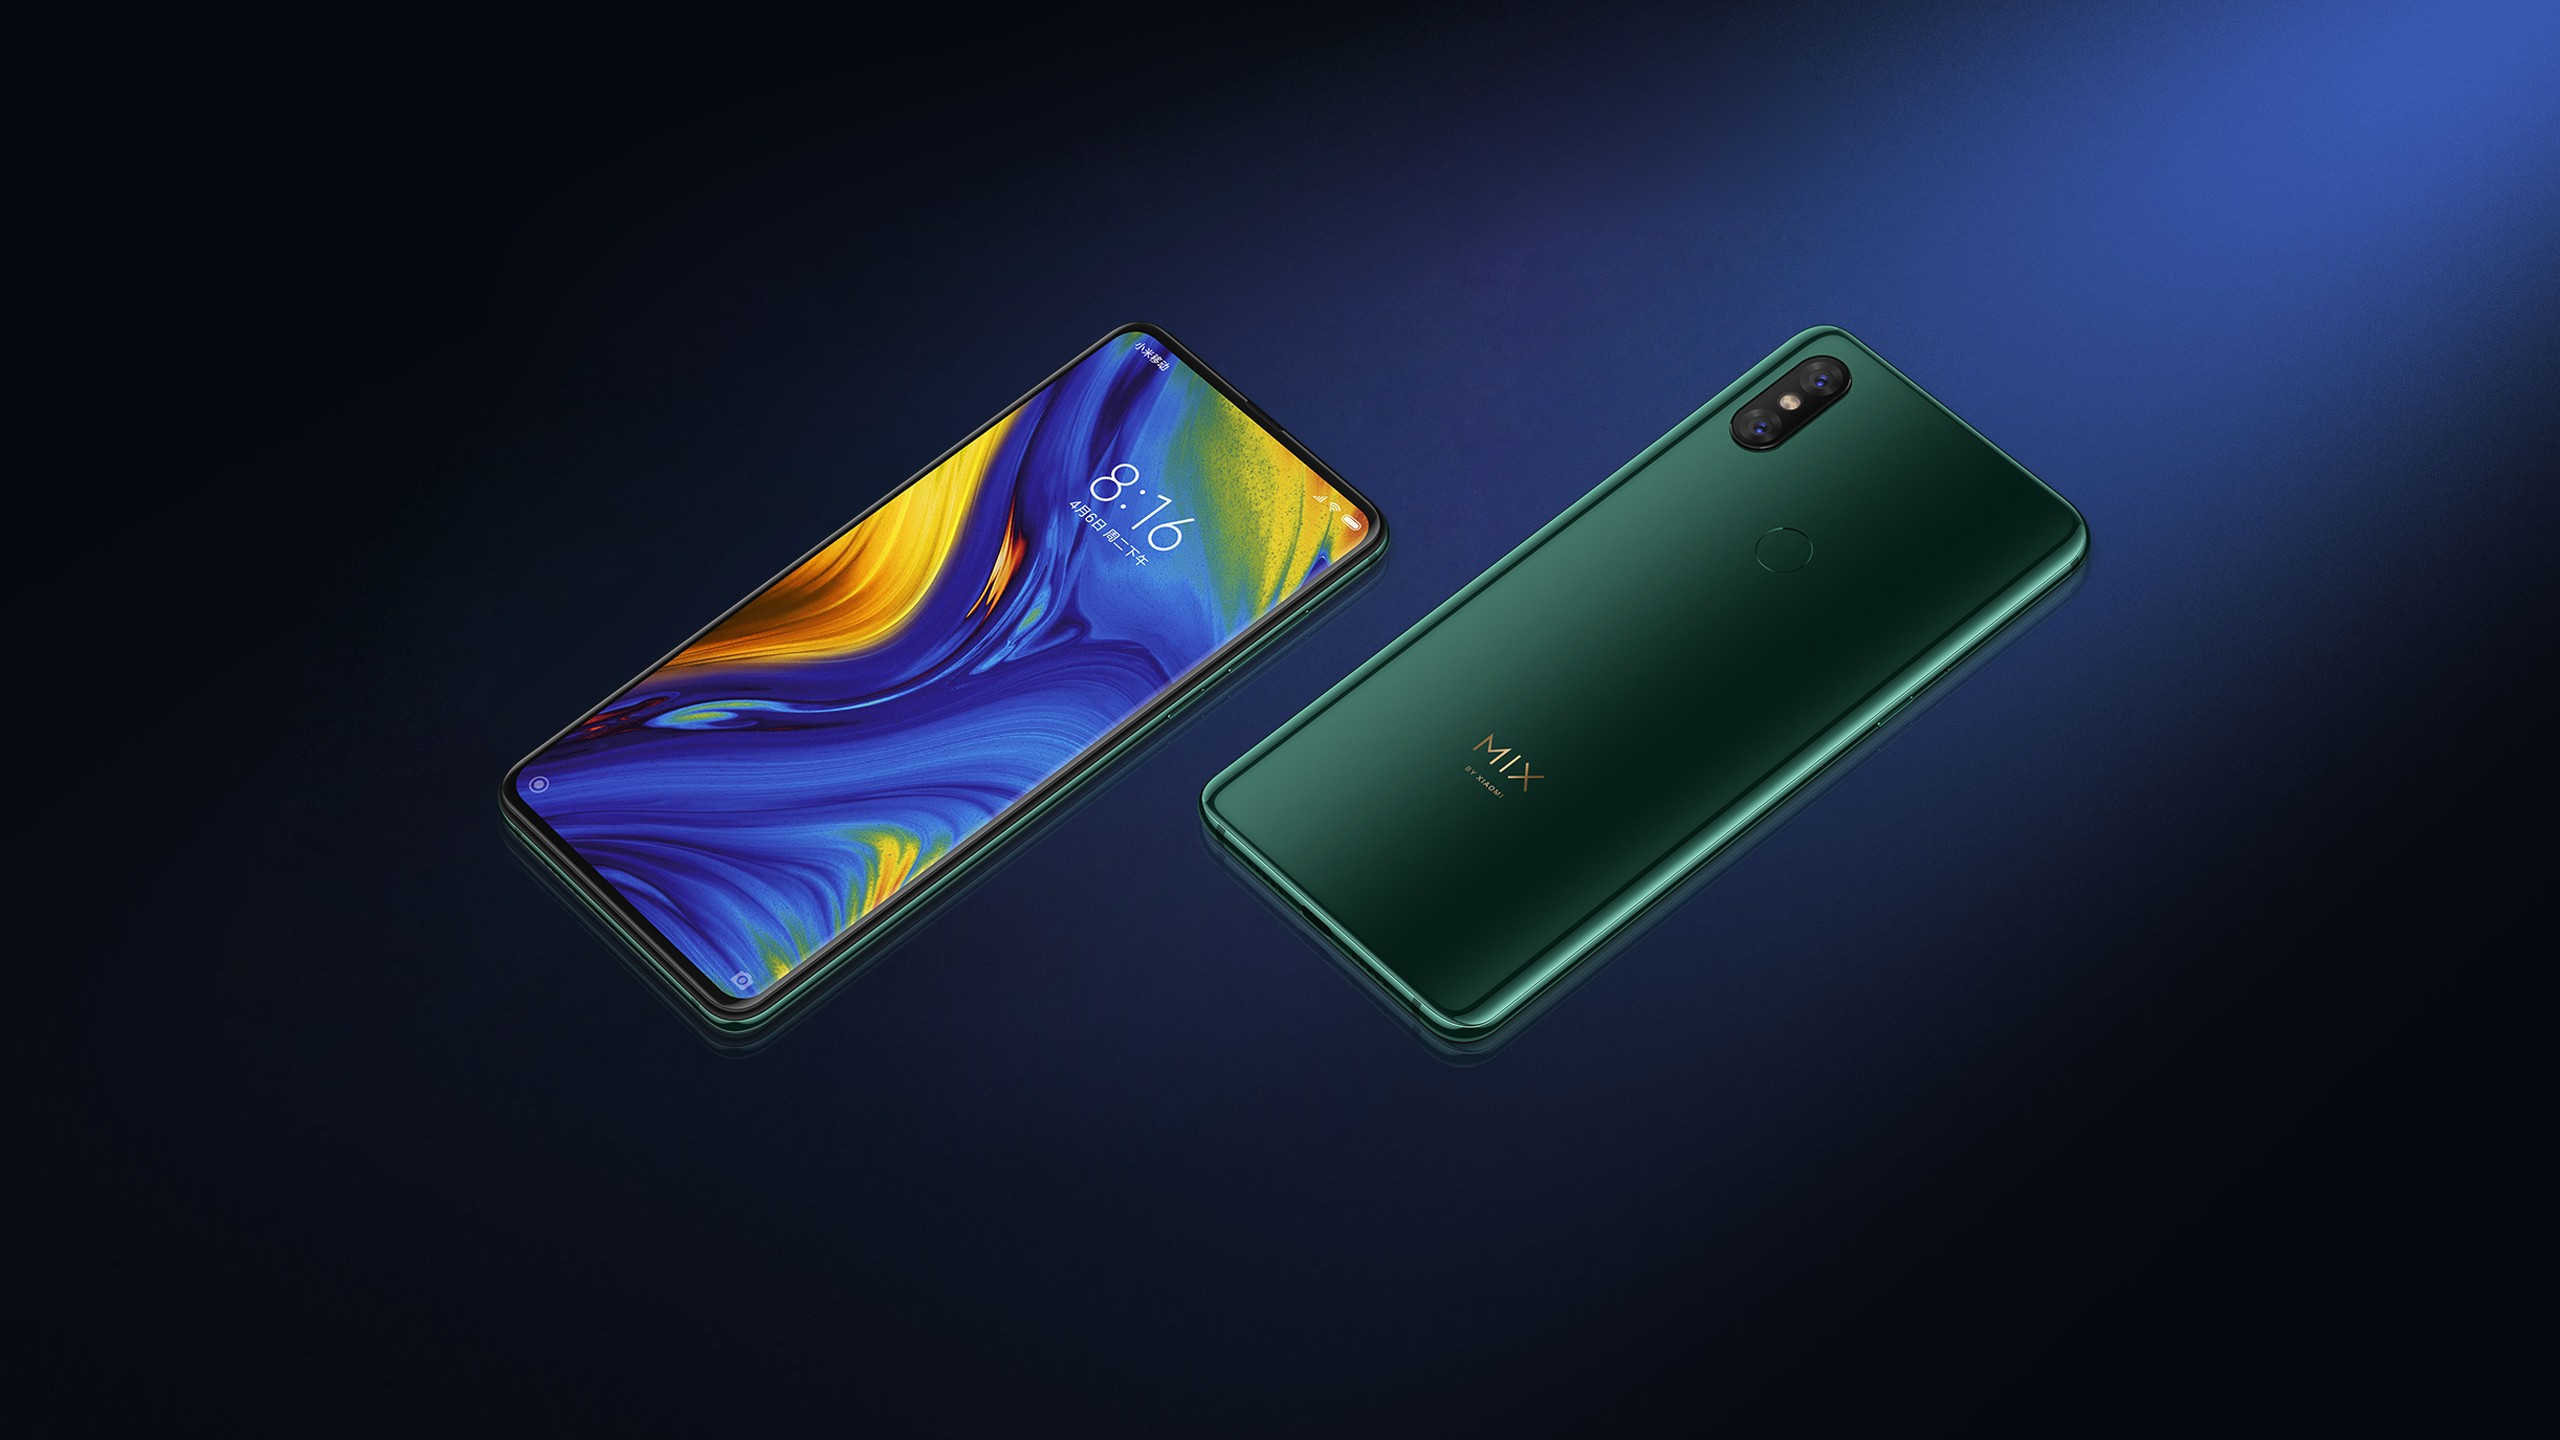 Xiaomi Wallpapers Hd: Wallpaper Xiaomi Mi Mix 3, HD, Hi-Tech #20760